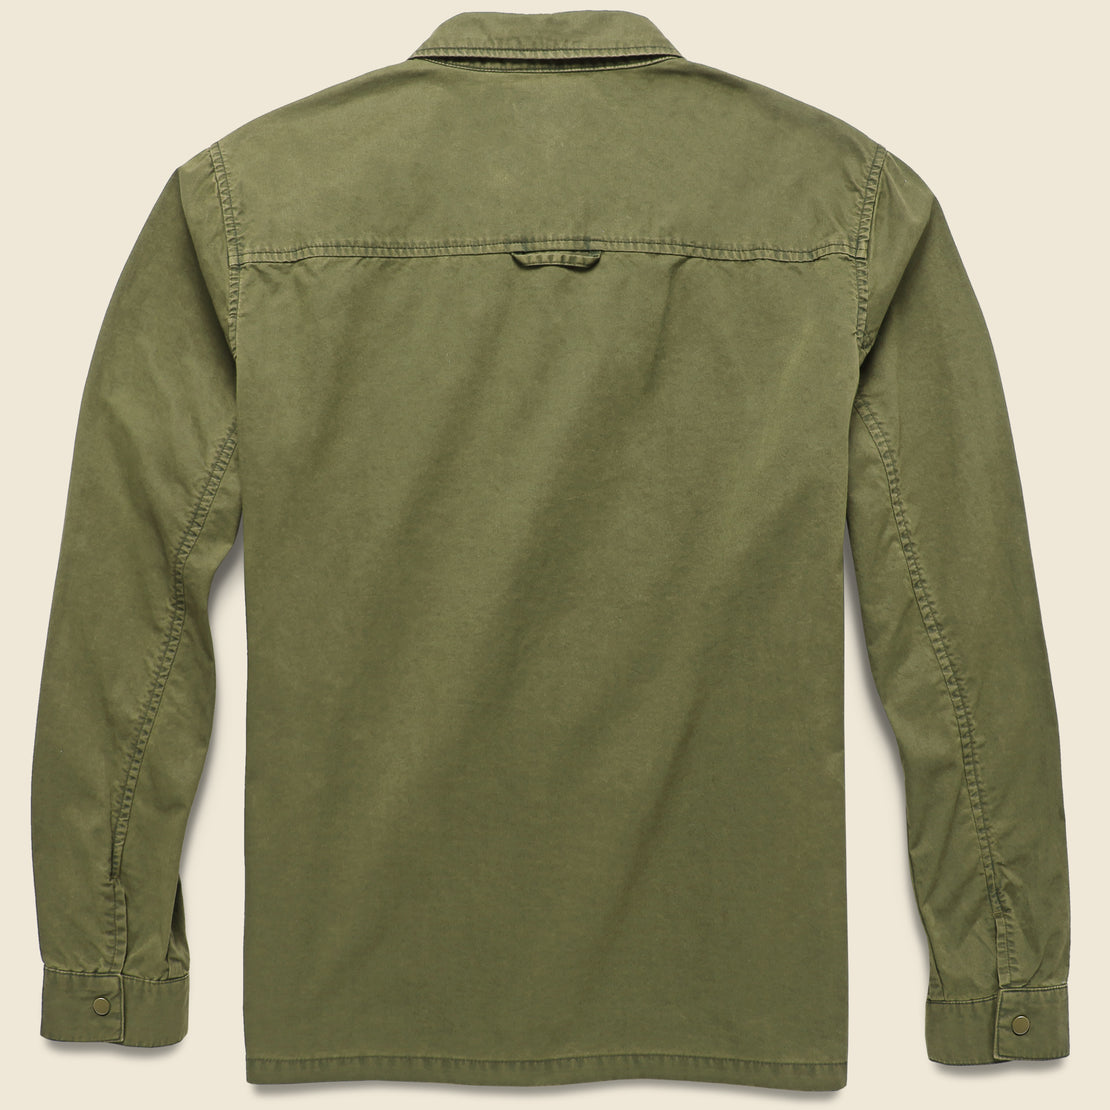 Blackstone Shirt - Olive